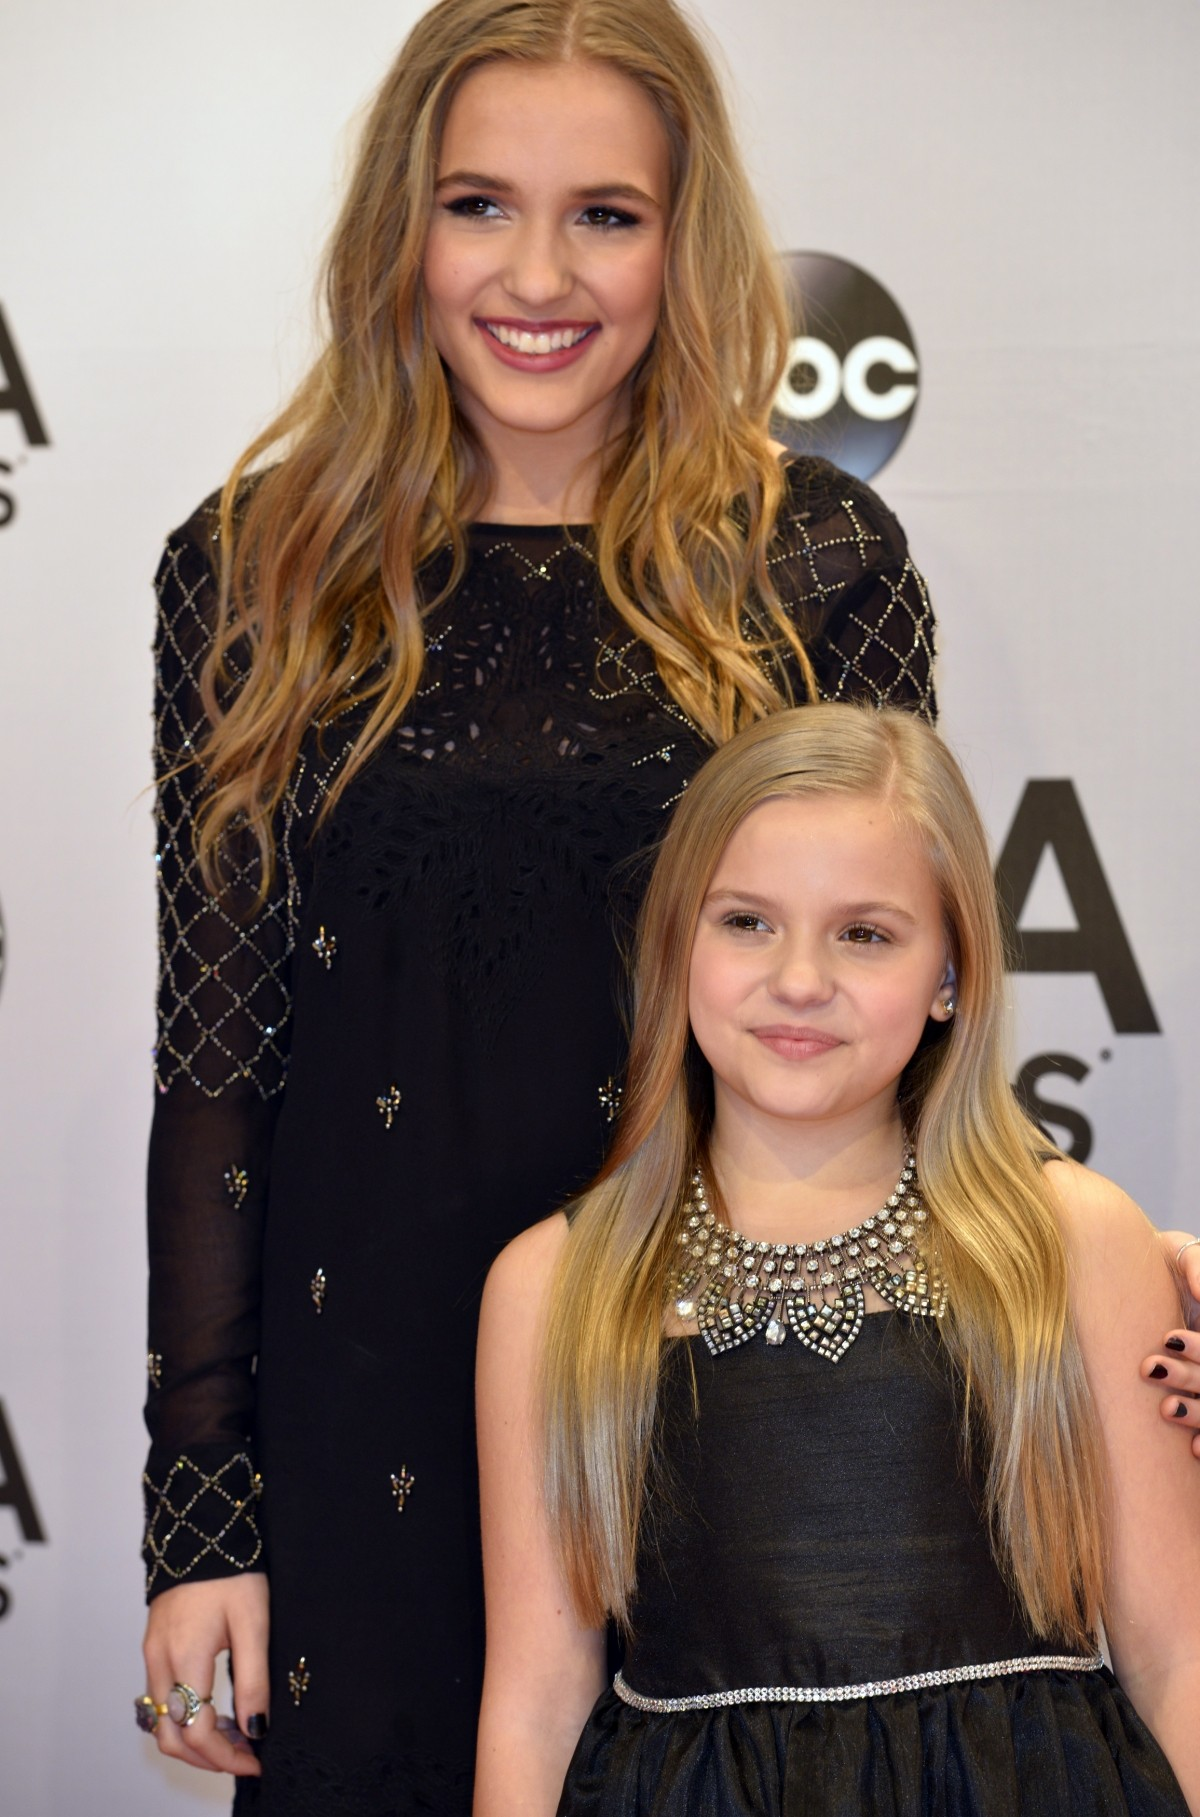 Best dressed at the CMA red carpet